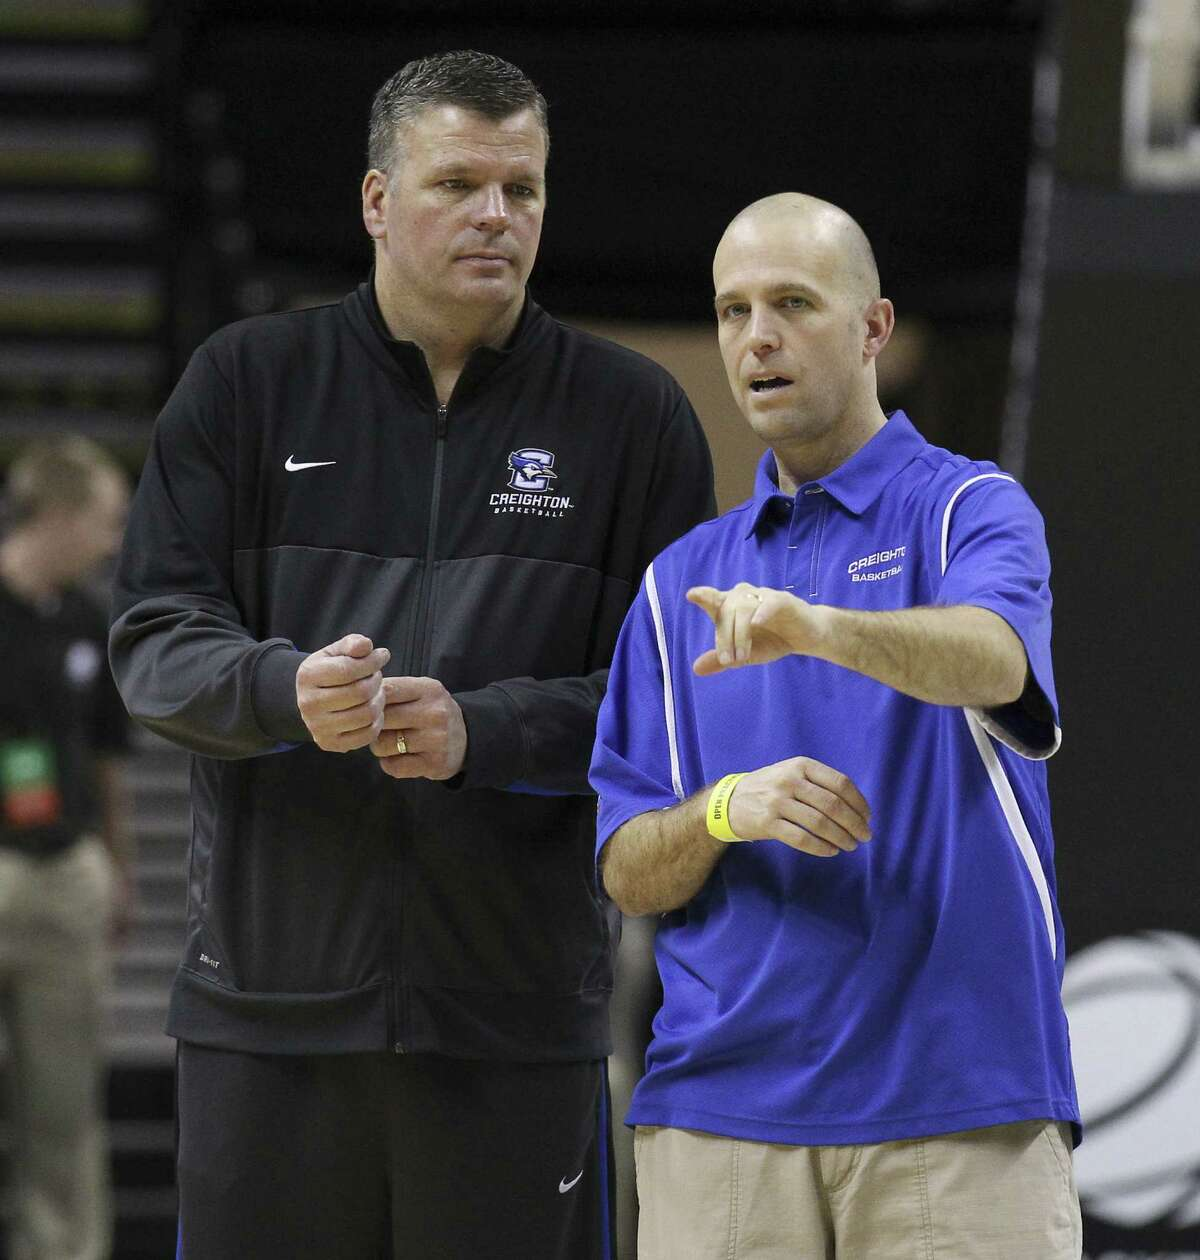 Creighton coach Greg McDermott (left) chats with assistant Steve Lutz, an East Central grad who played at Texas Lutheran.